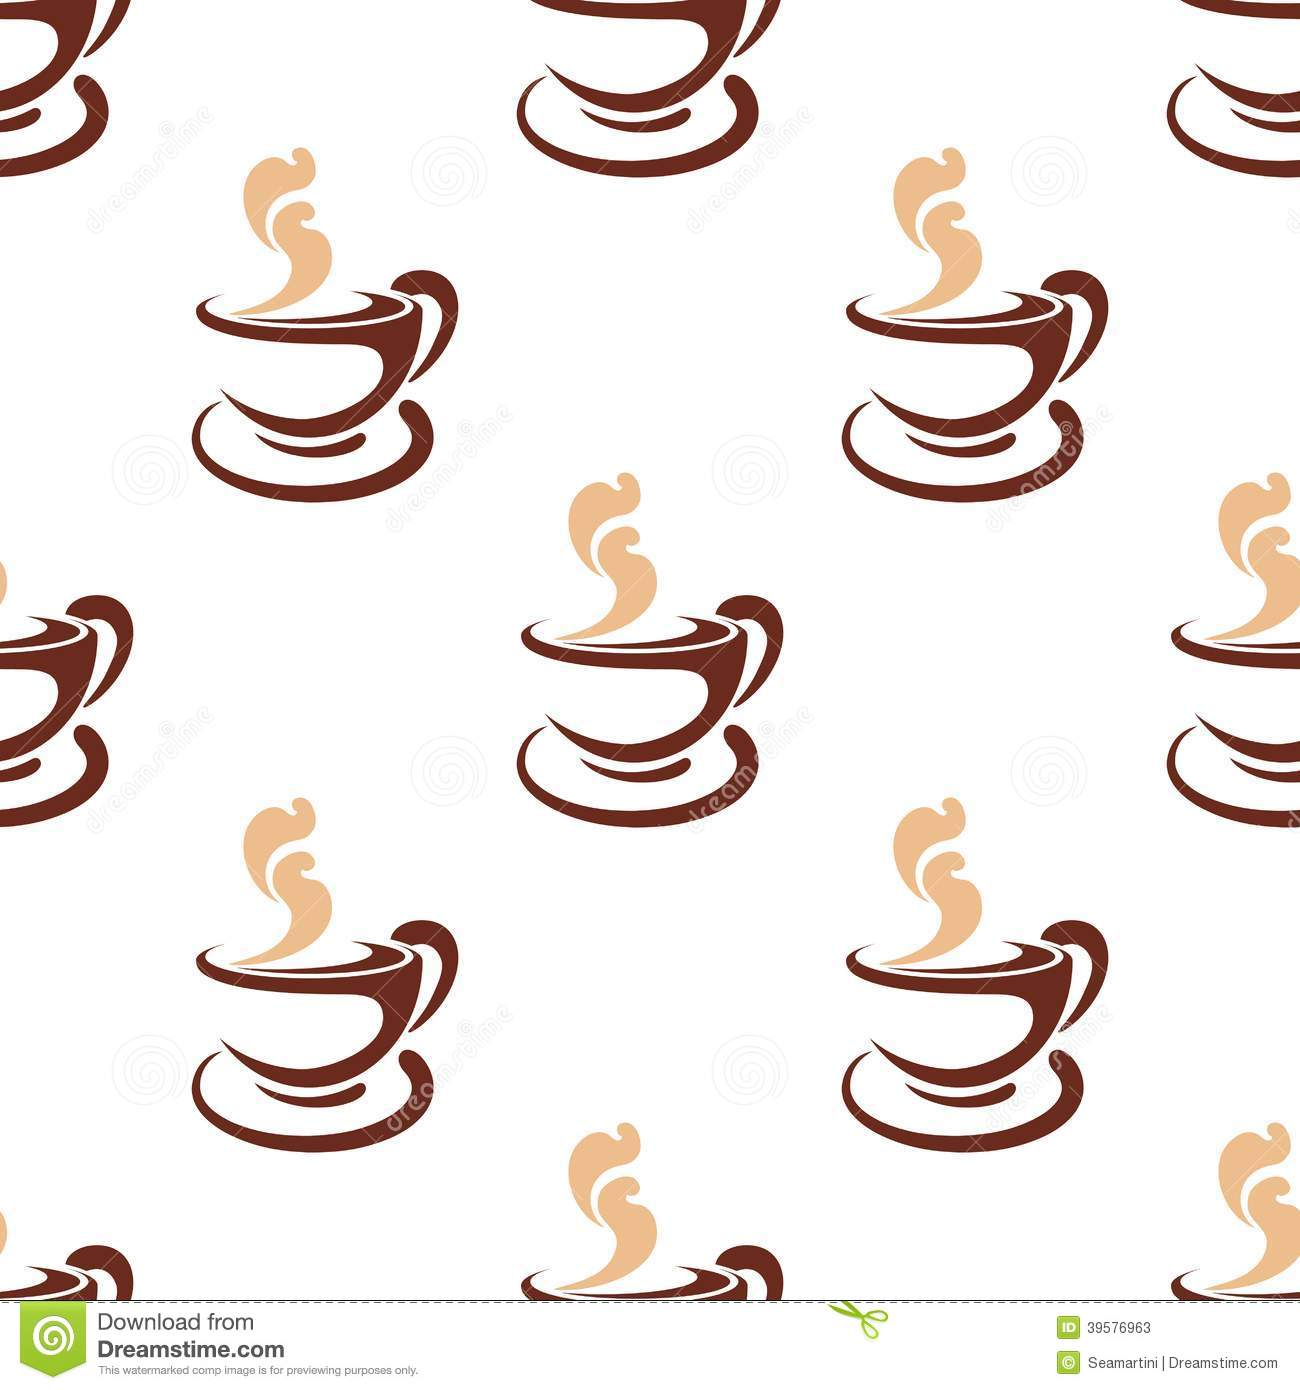 seamless doodle coffee pattern - photo #31